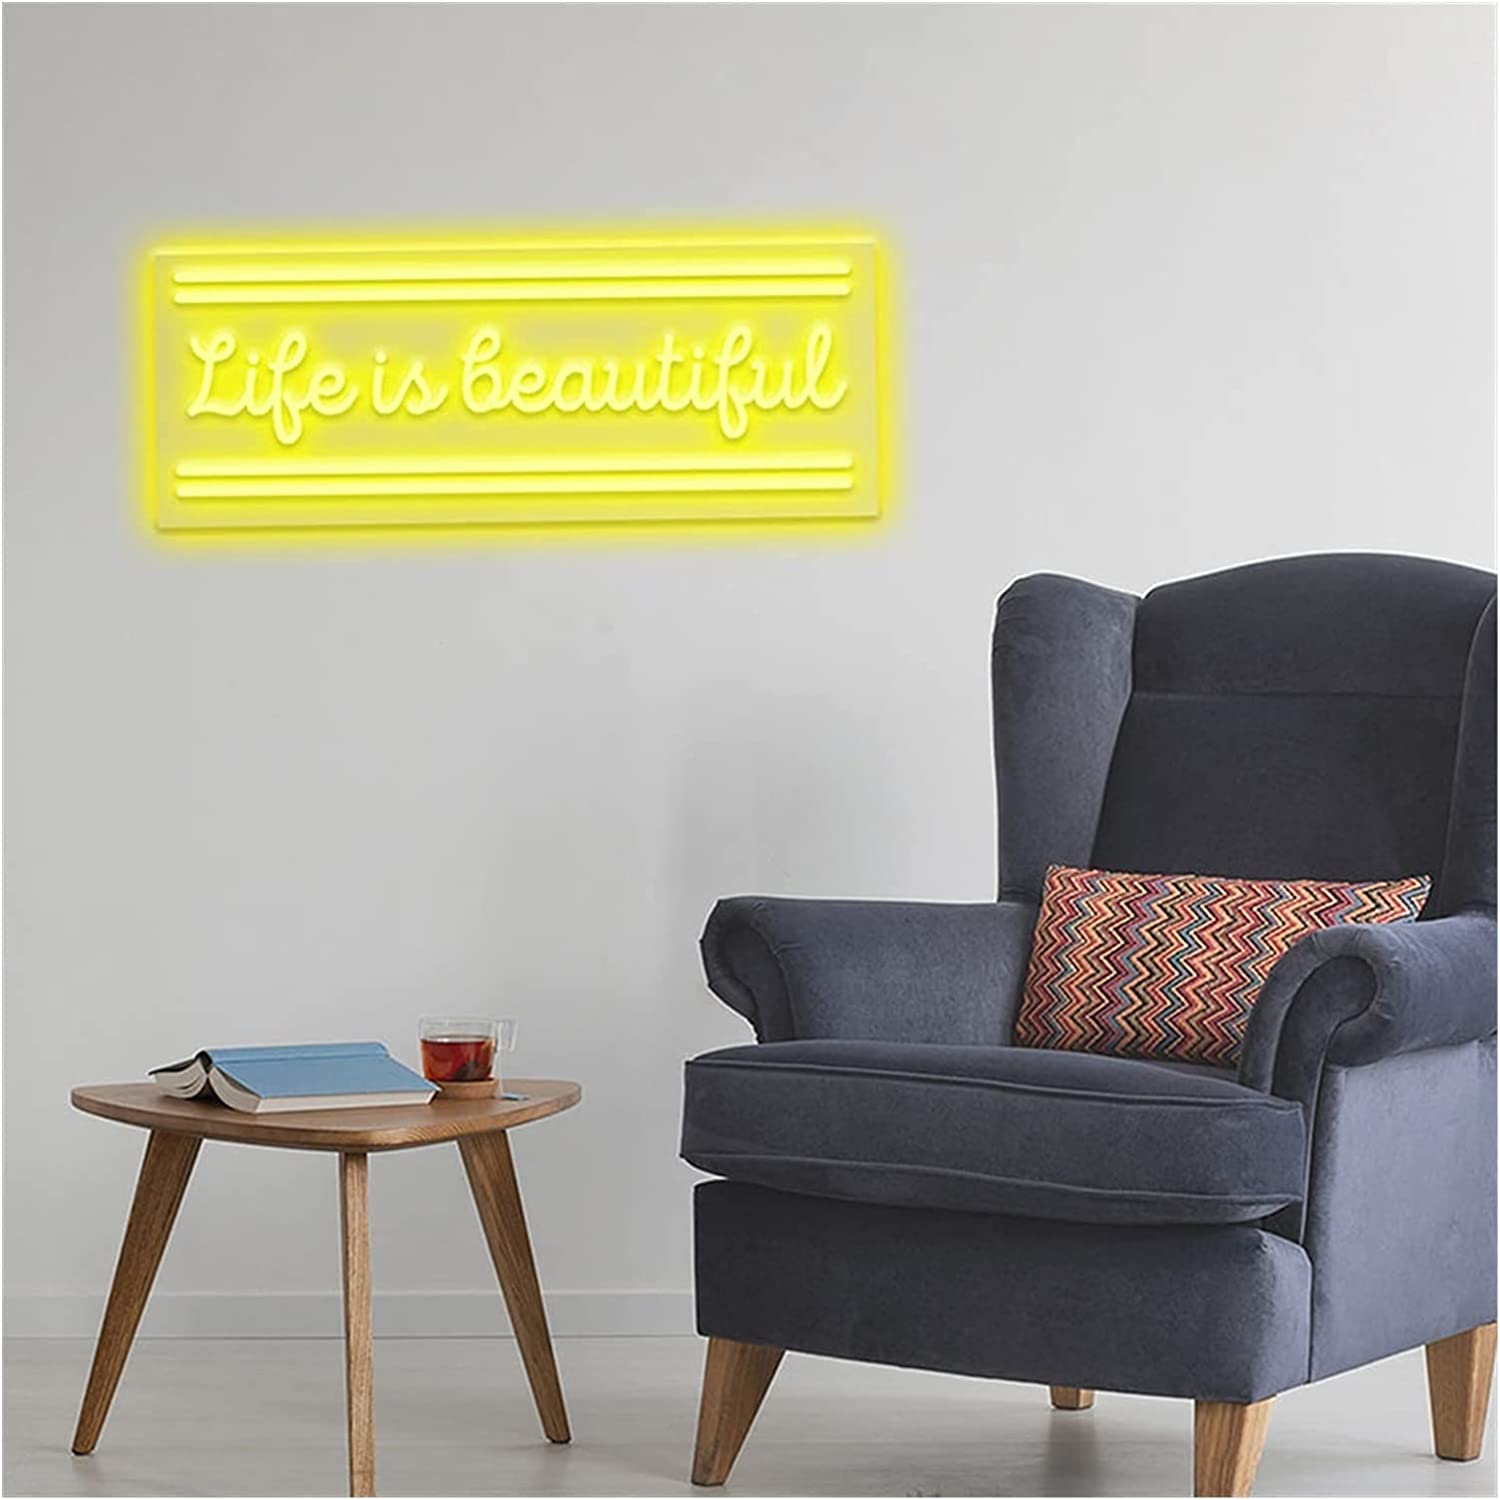 Neon Many popular Tampa Mall brands Signs Wall Sign Custom Lighting Room Home L Decor House for